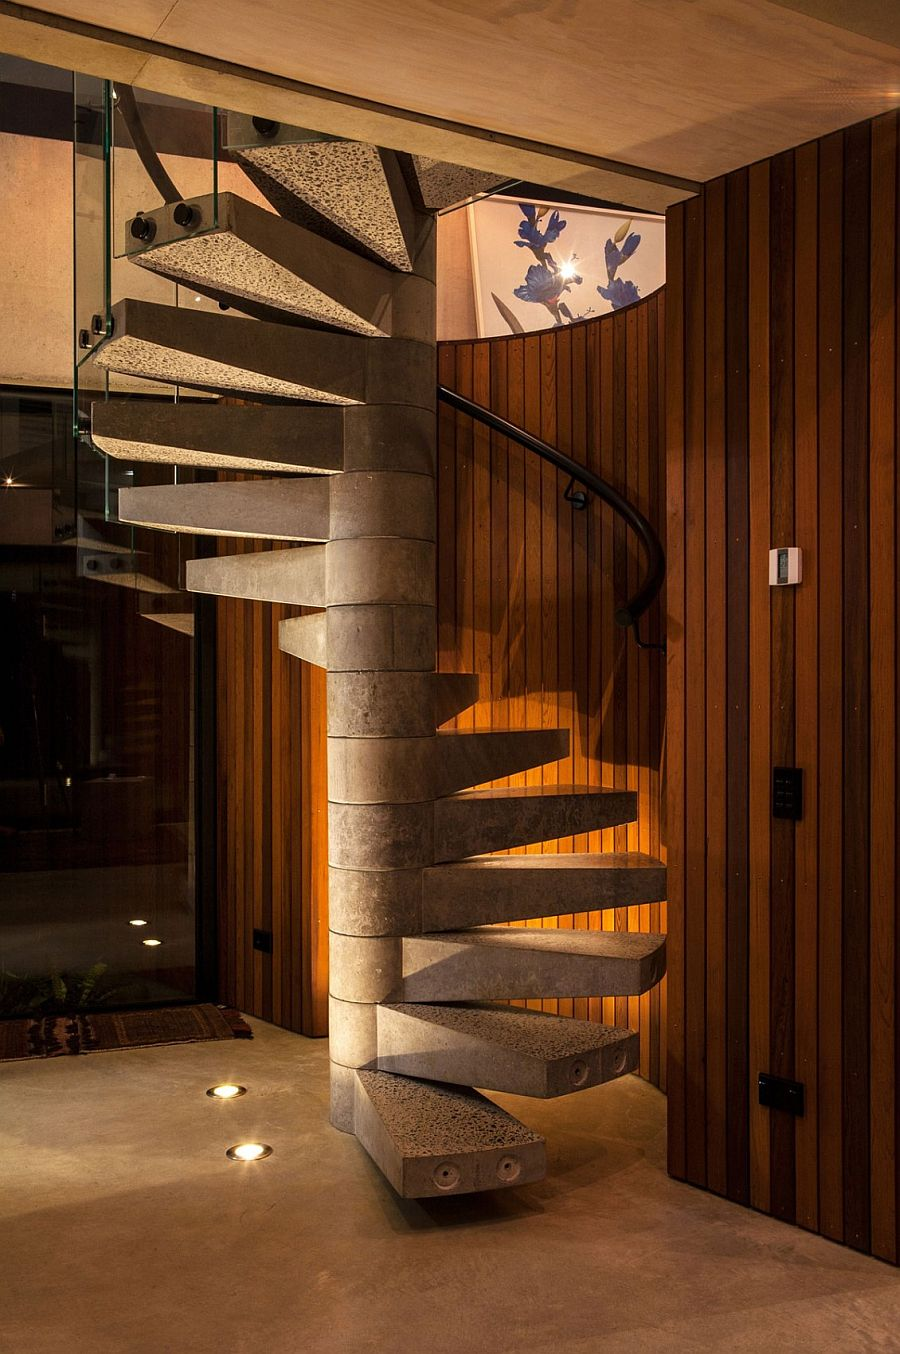 Spiral concrete staircase set against a cedar-clad wall